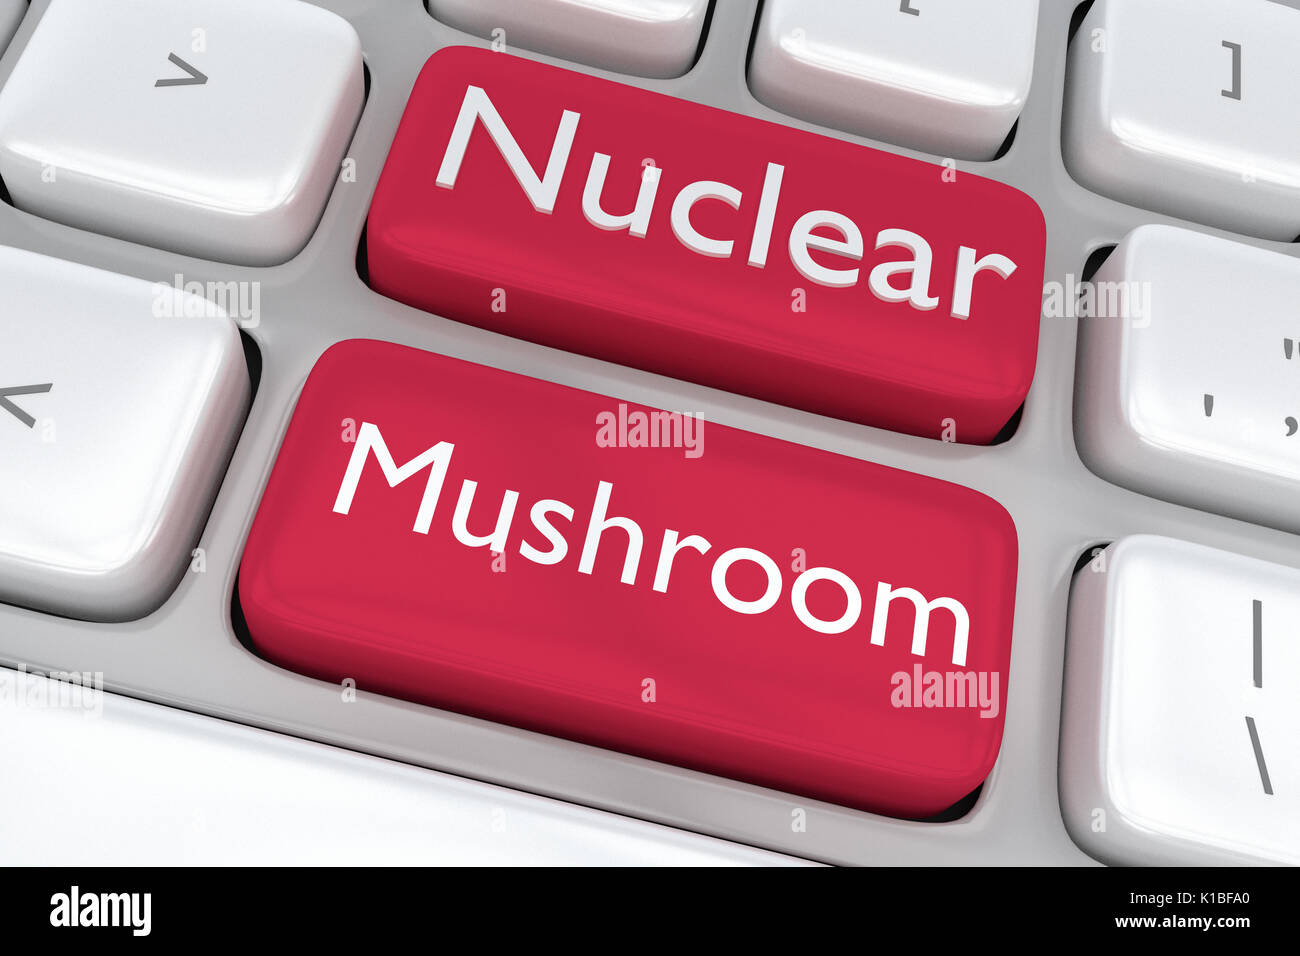 Render illustration of computer keyboard with the print Nuclear Mushroom on two adjacent red buttons - Stock Image